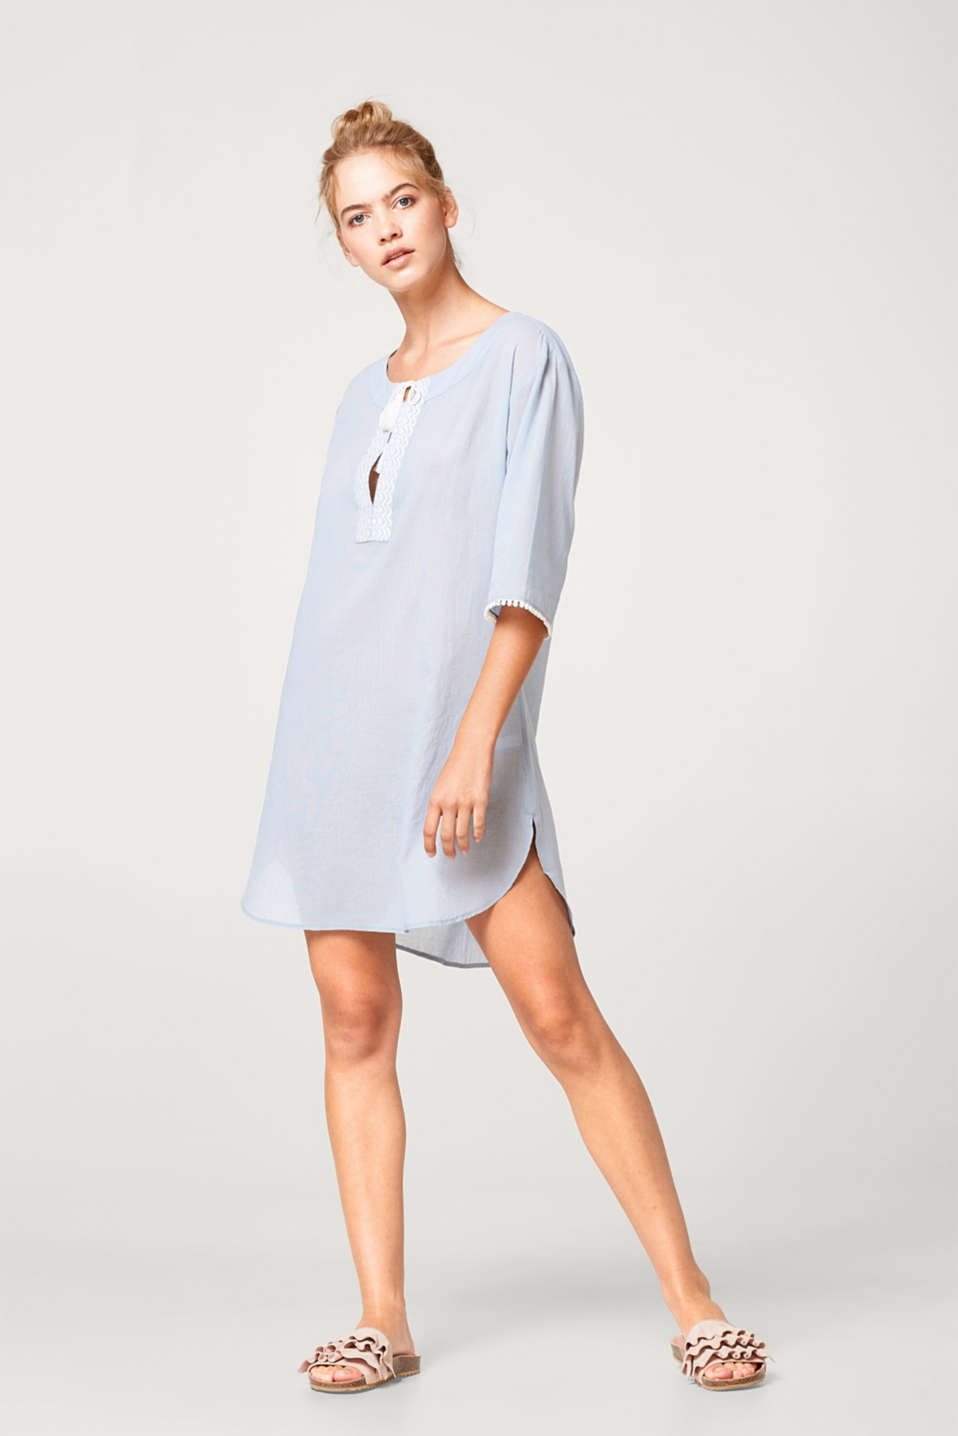 Esprit - Lightweight tunic with embroidery, 100% cotton